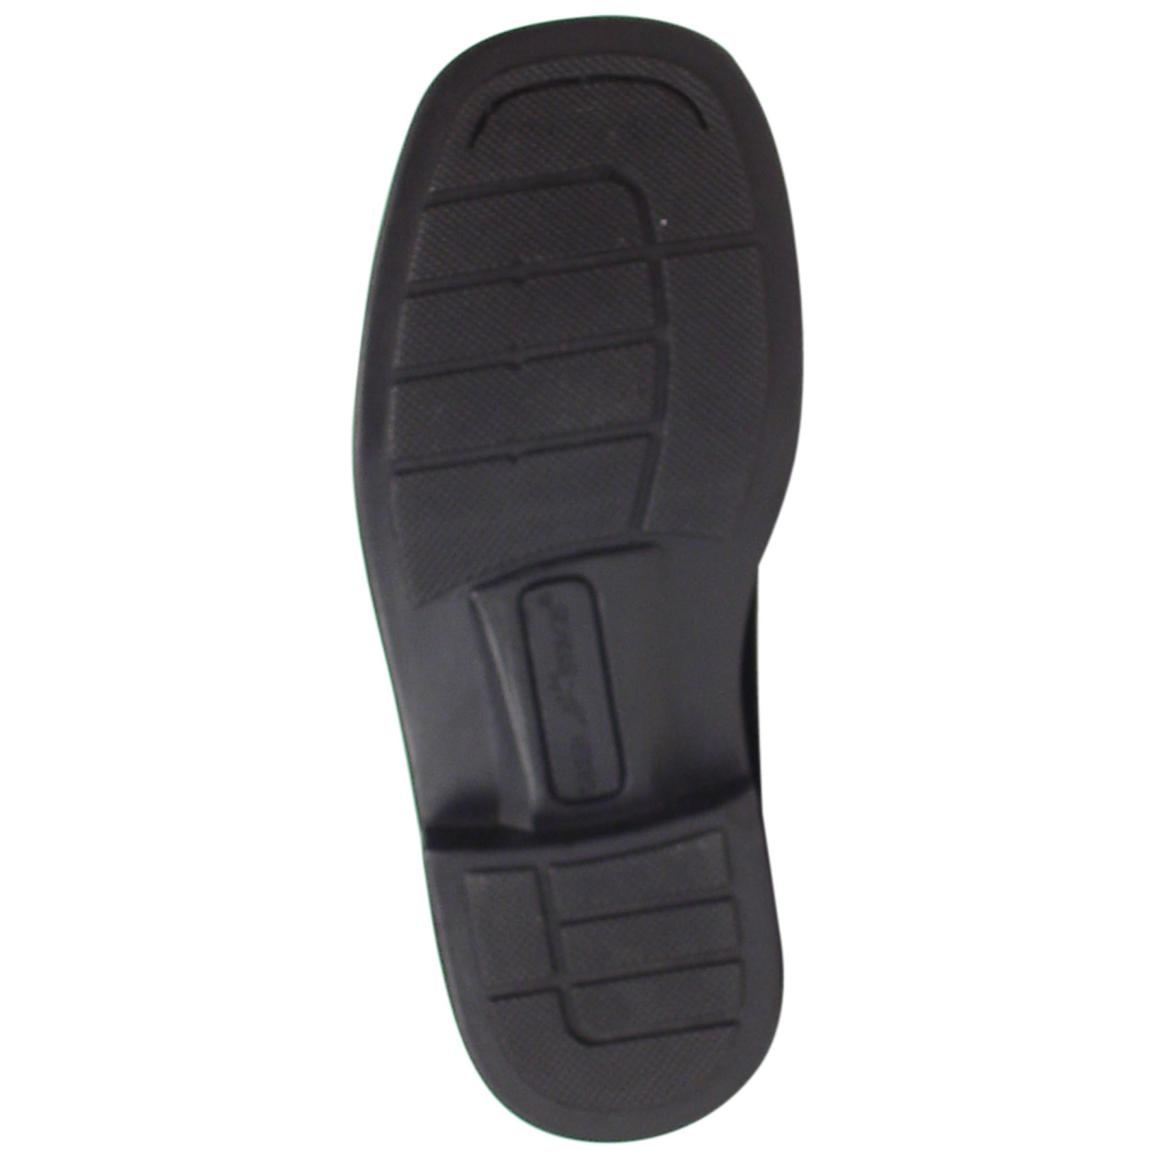 Sturdy TPR outsole for stability and traction